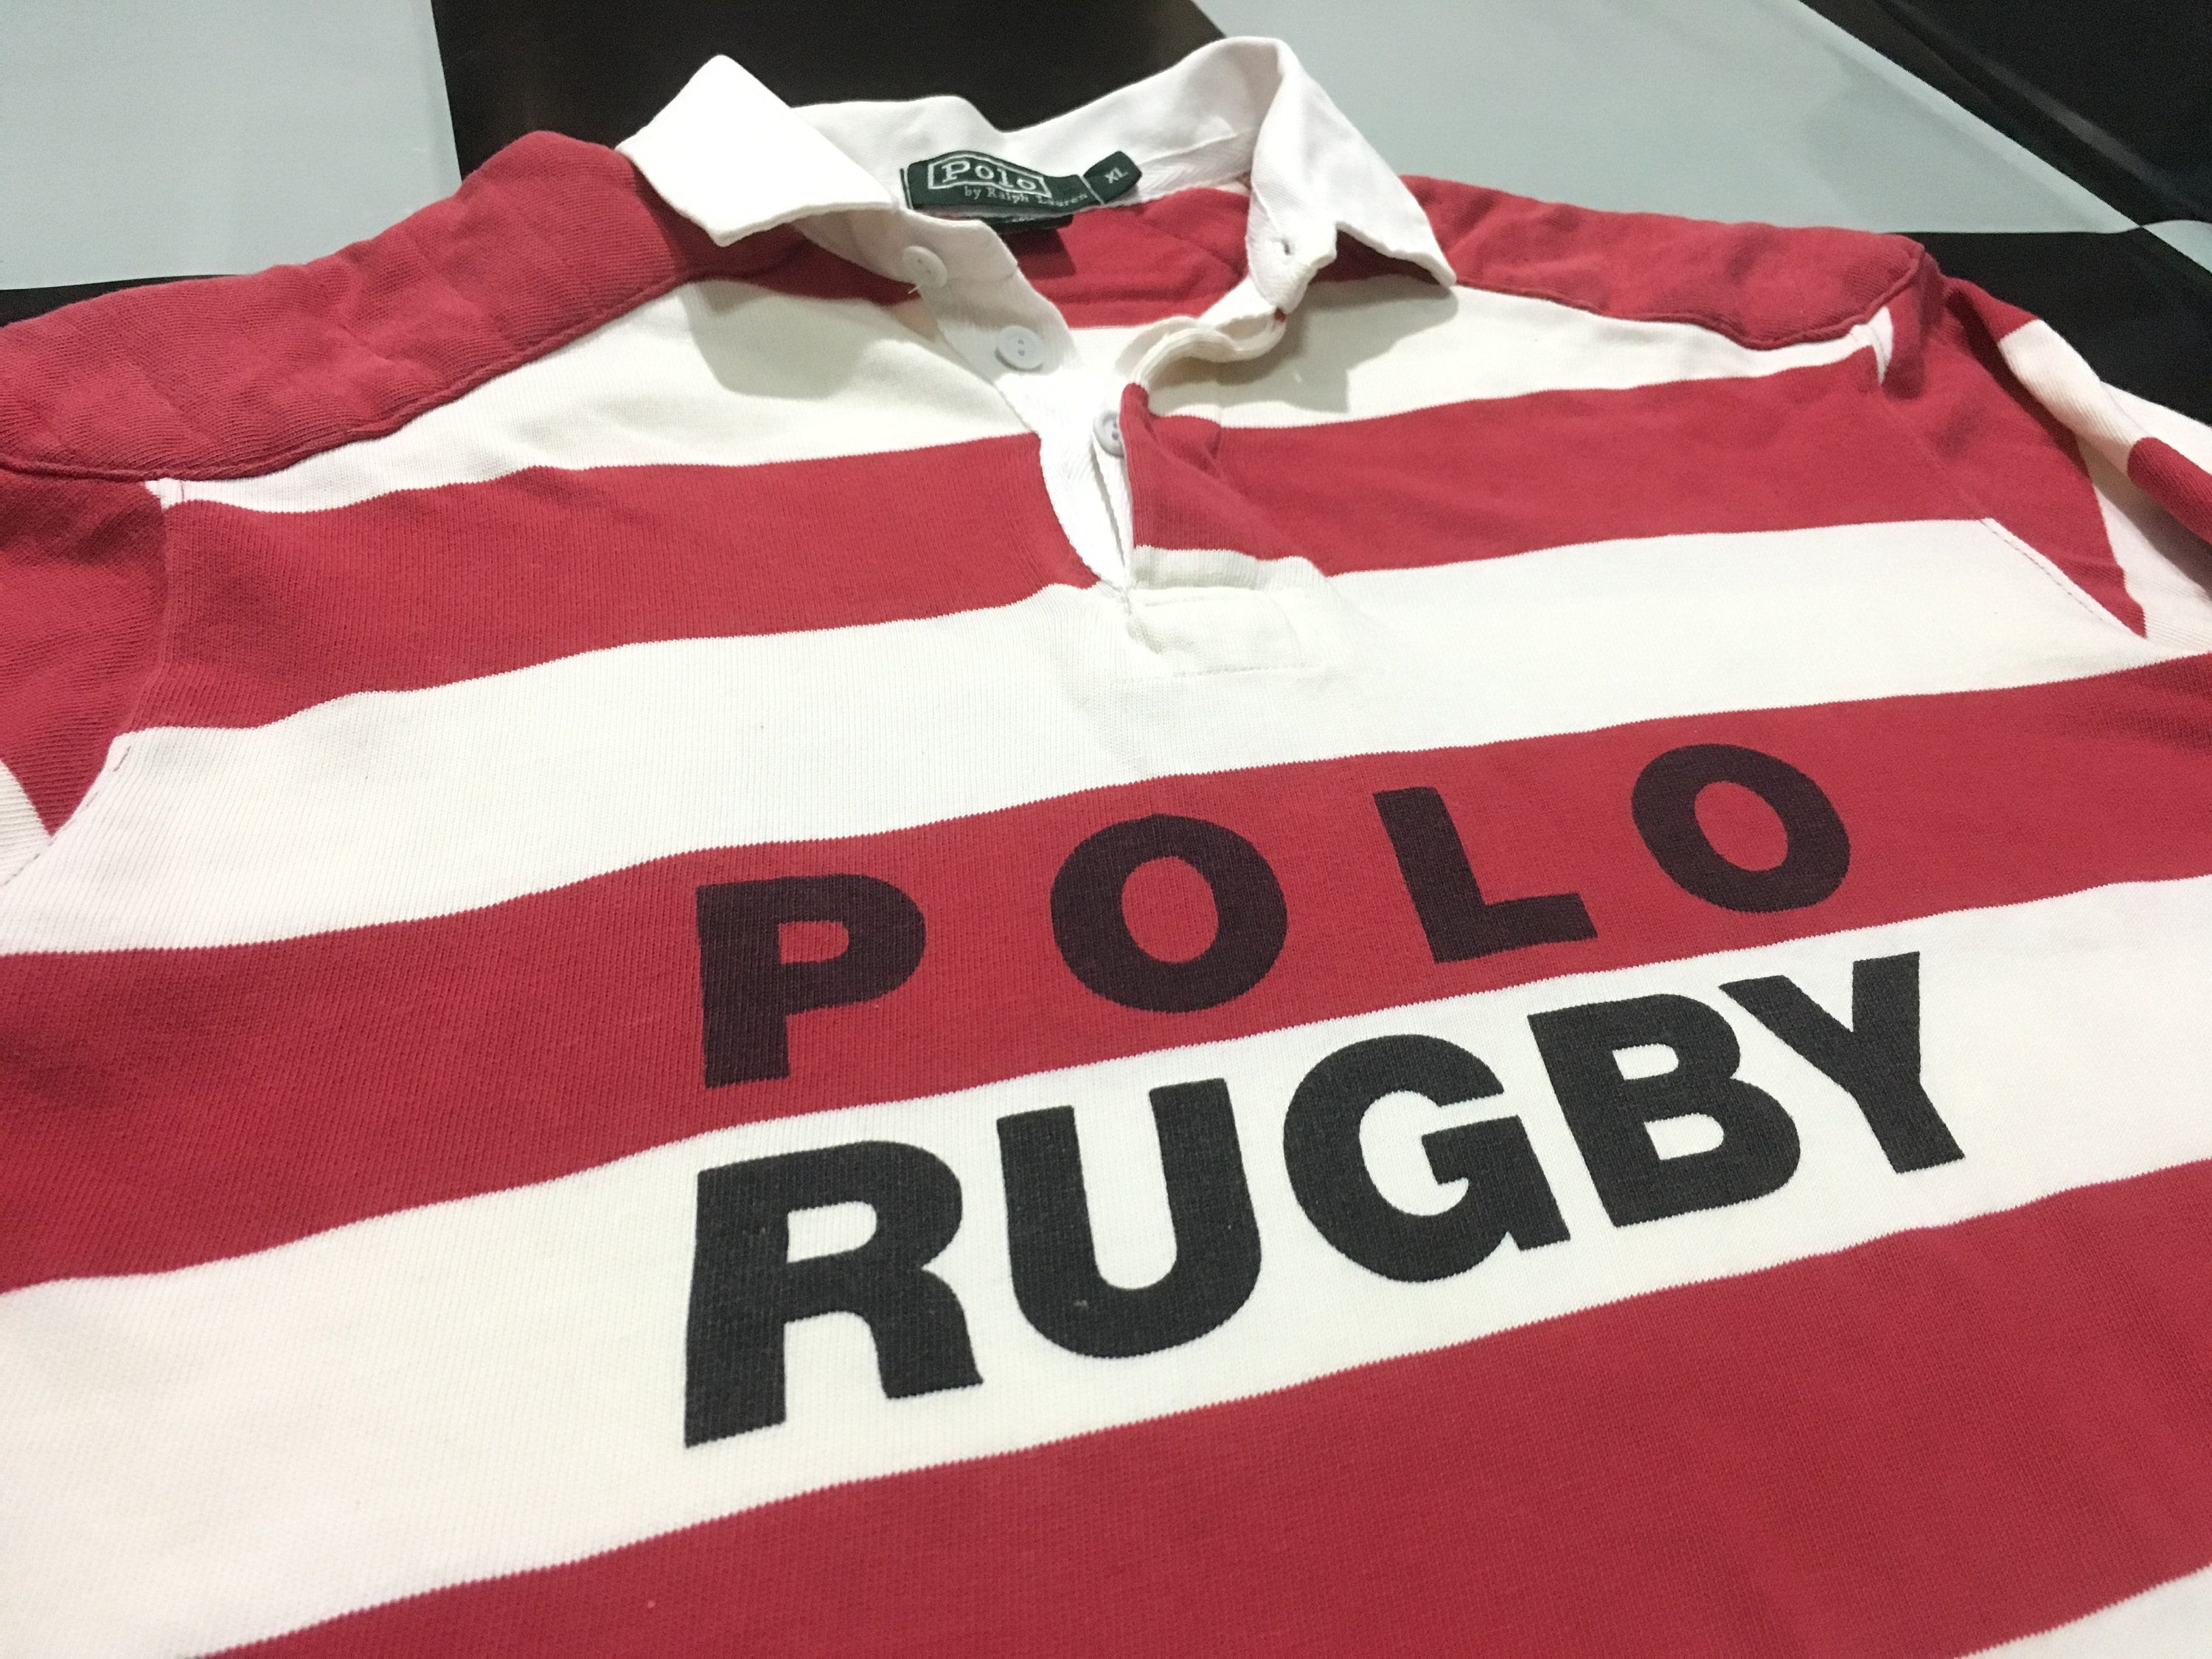 93700d032c8 Rare Vintage Polo ralph lauren rugby shirt long sleeve color striped spell  out POLO RUGBY Size XL Good condition by AlivevintageShop on Etsy